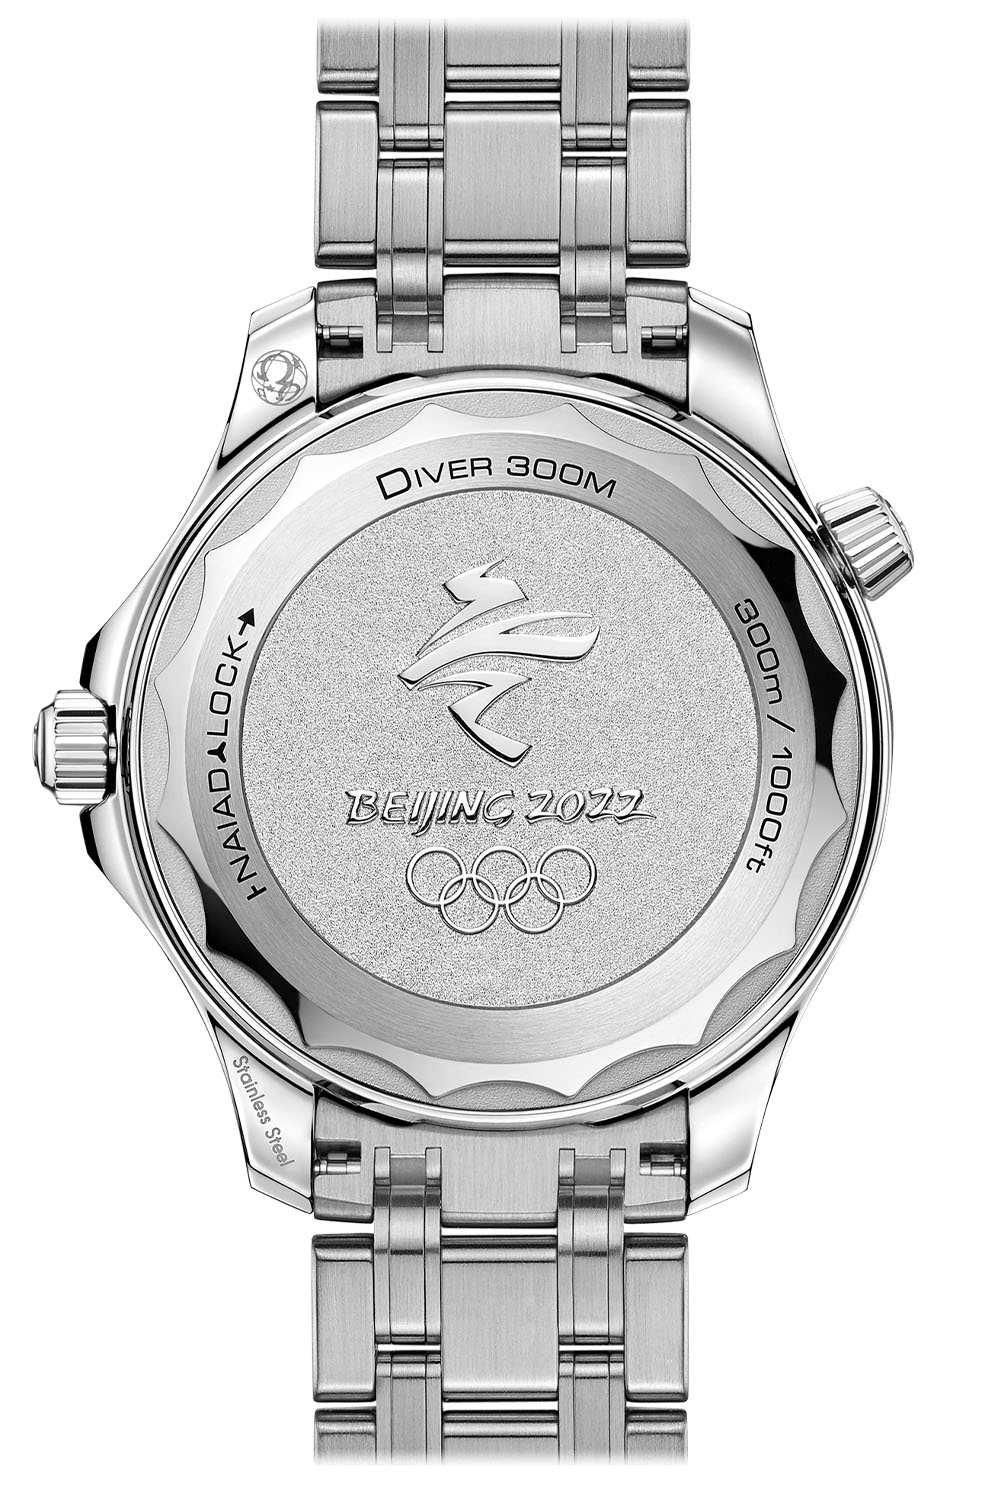 Omega Seamaster Diver 300M Beijing 2022 Special Edition 522-30-42-20-03-001 - 7